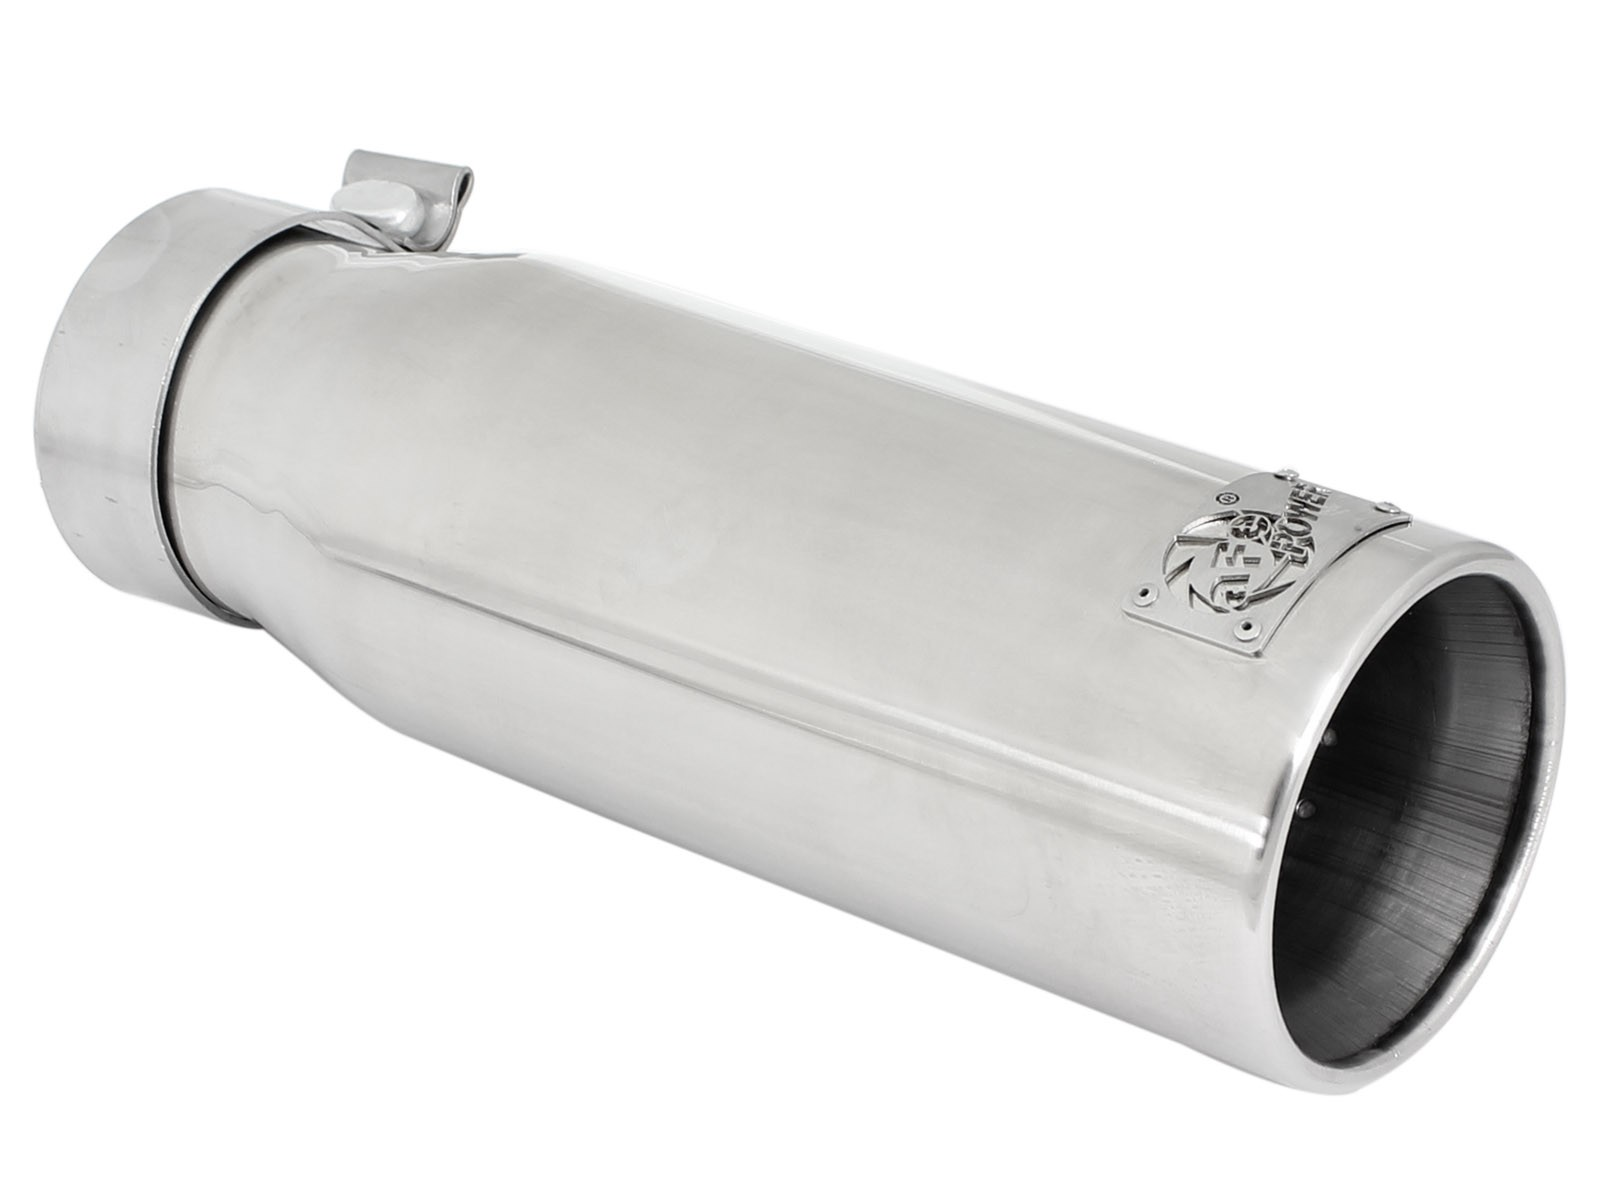 "aFe POWER 49-92043-P MACH Force-Xp 3"" 304 Stainless Steel Exhaust Tip"